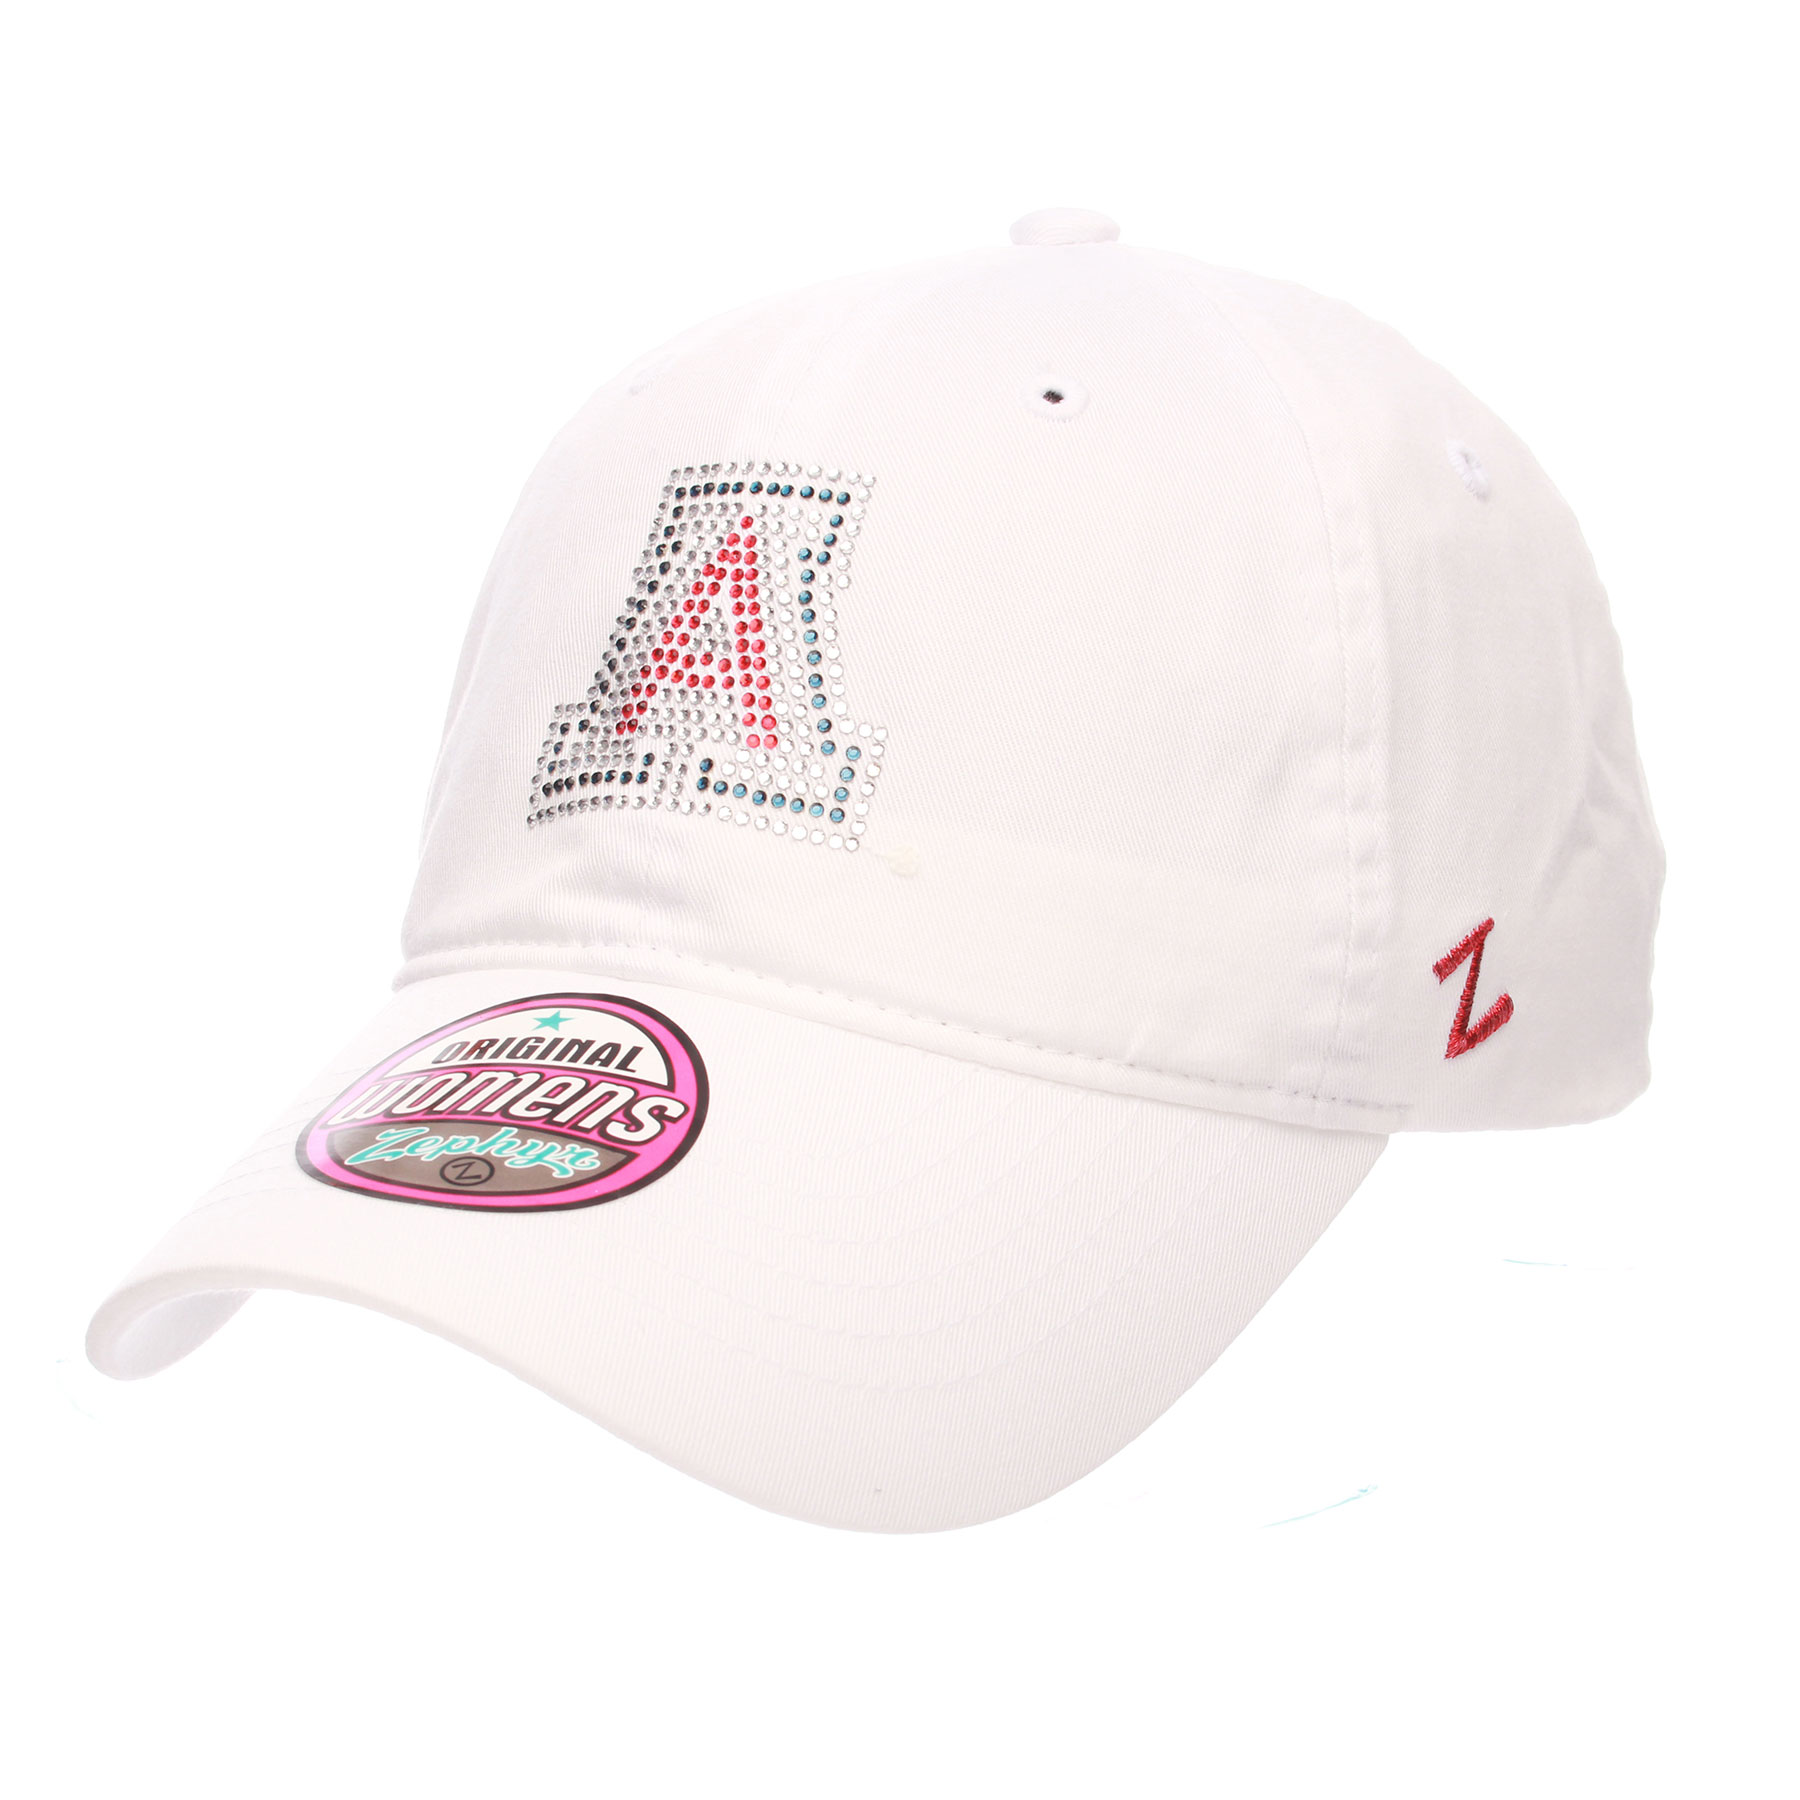 Image For Zephyr: Arizona Bling Logo  Women's Girlfriend Cap - White